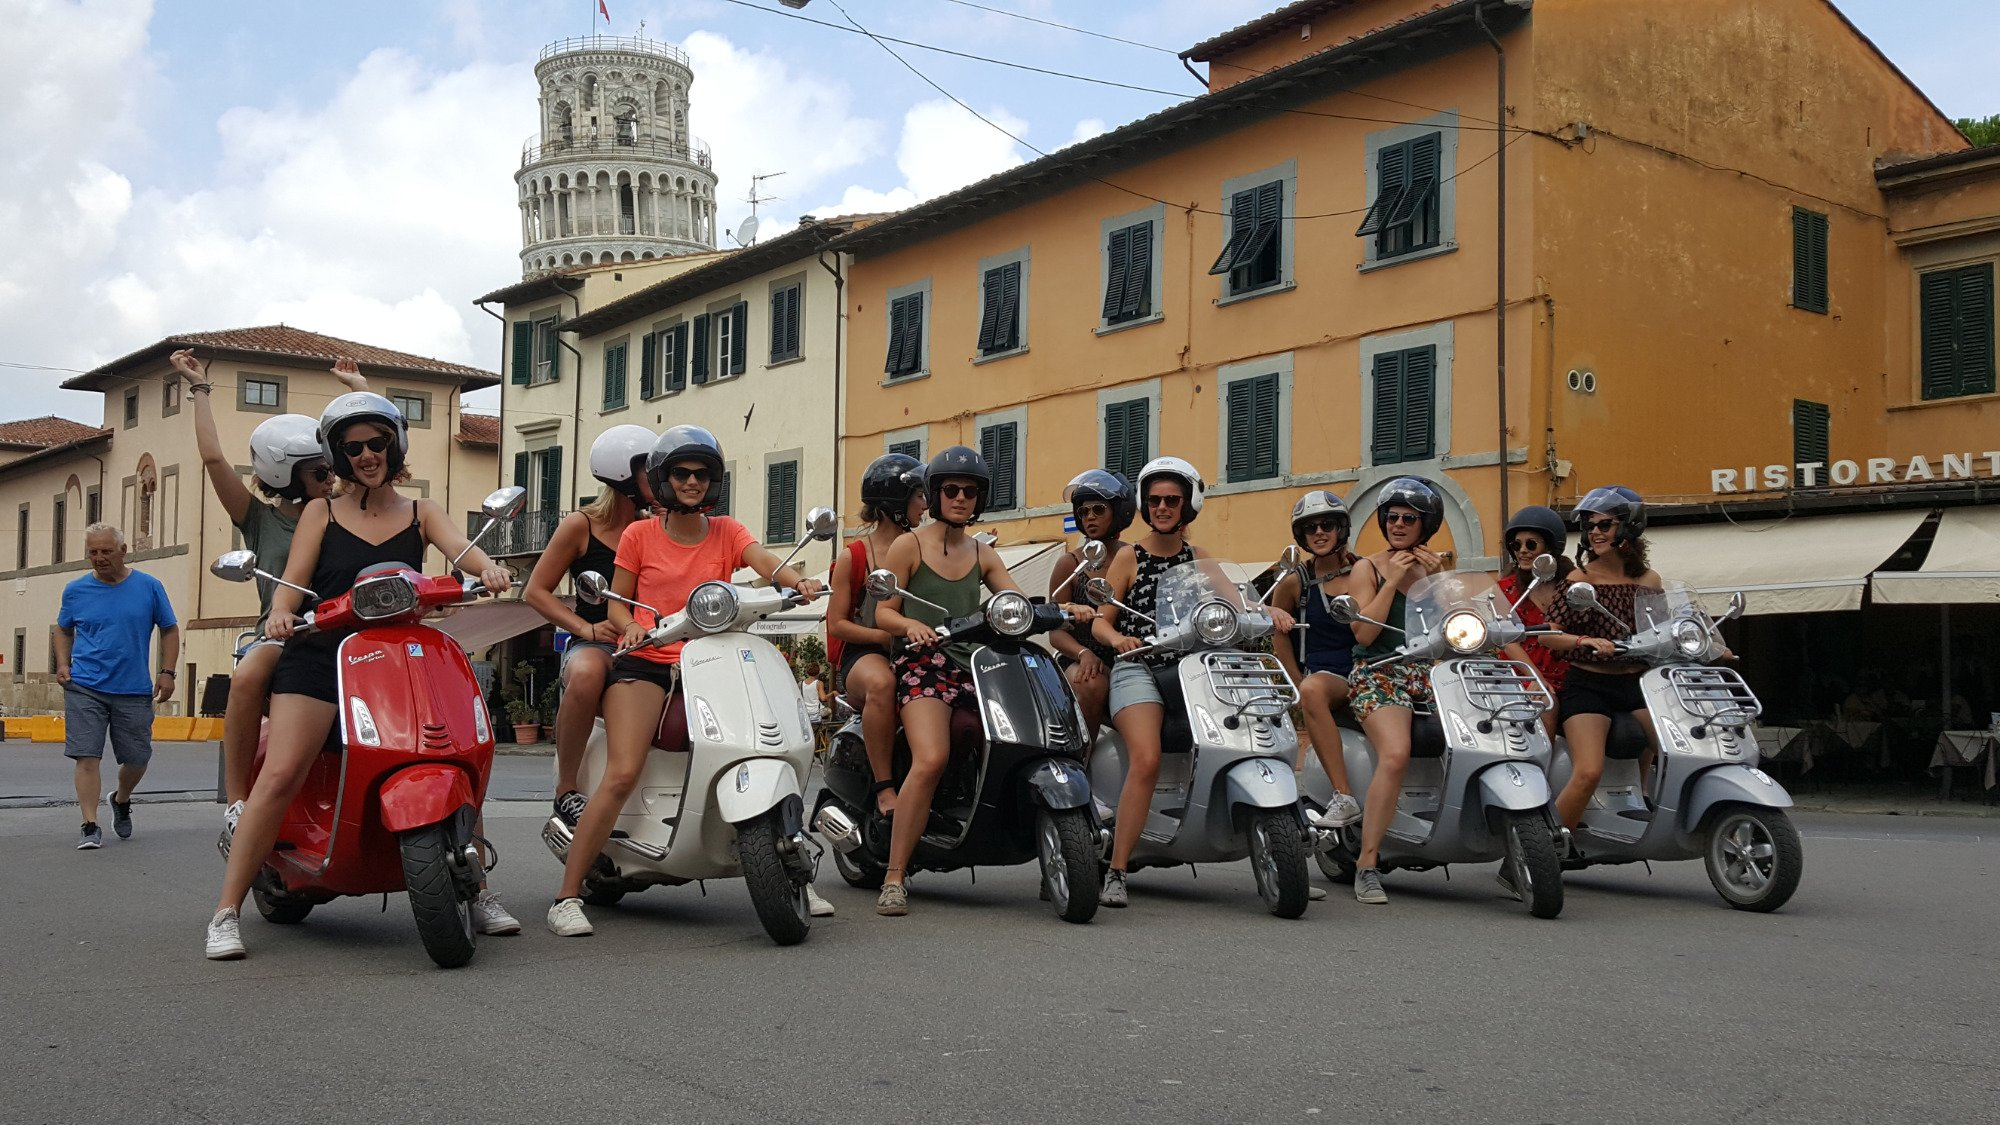 Toscana in Tour